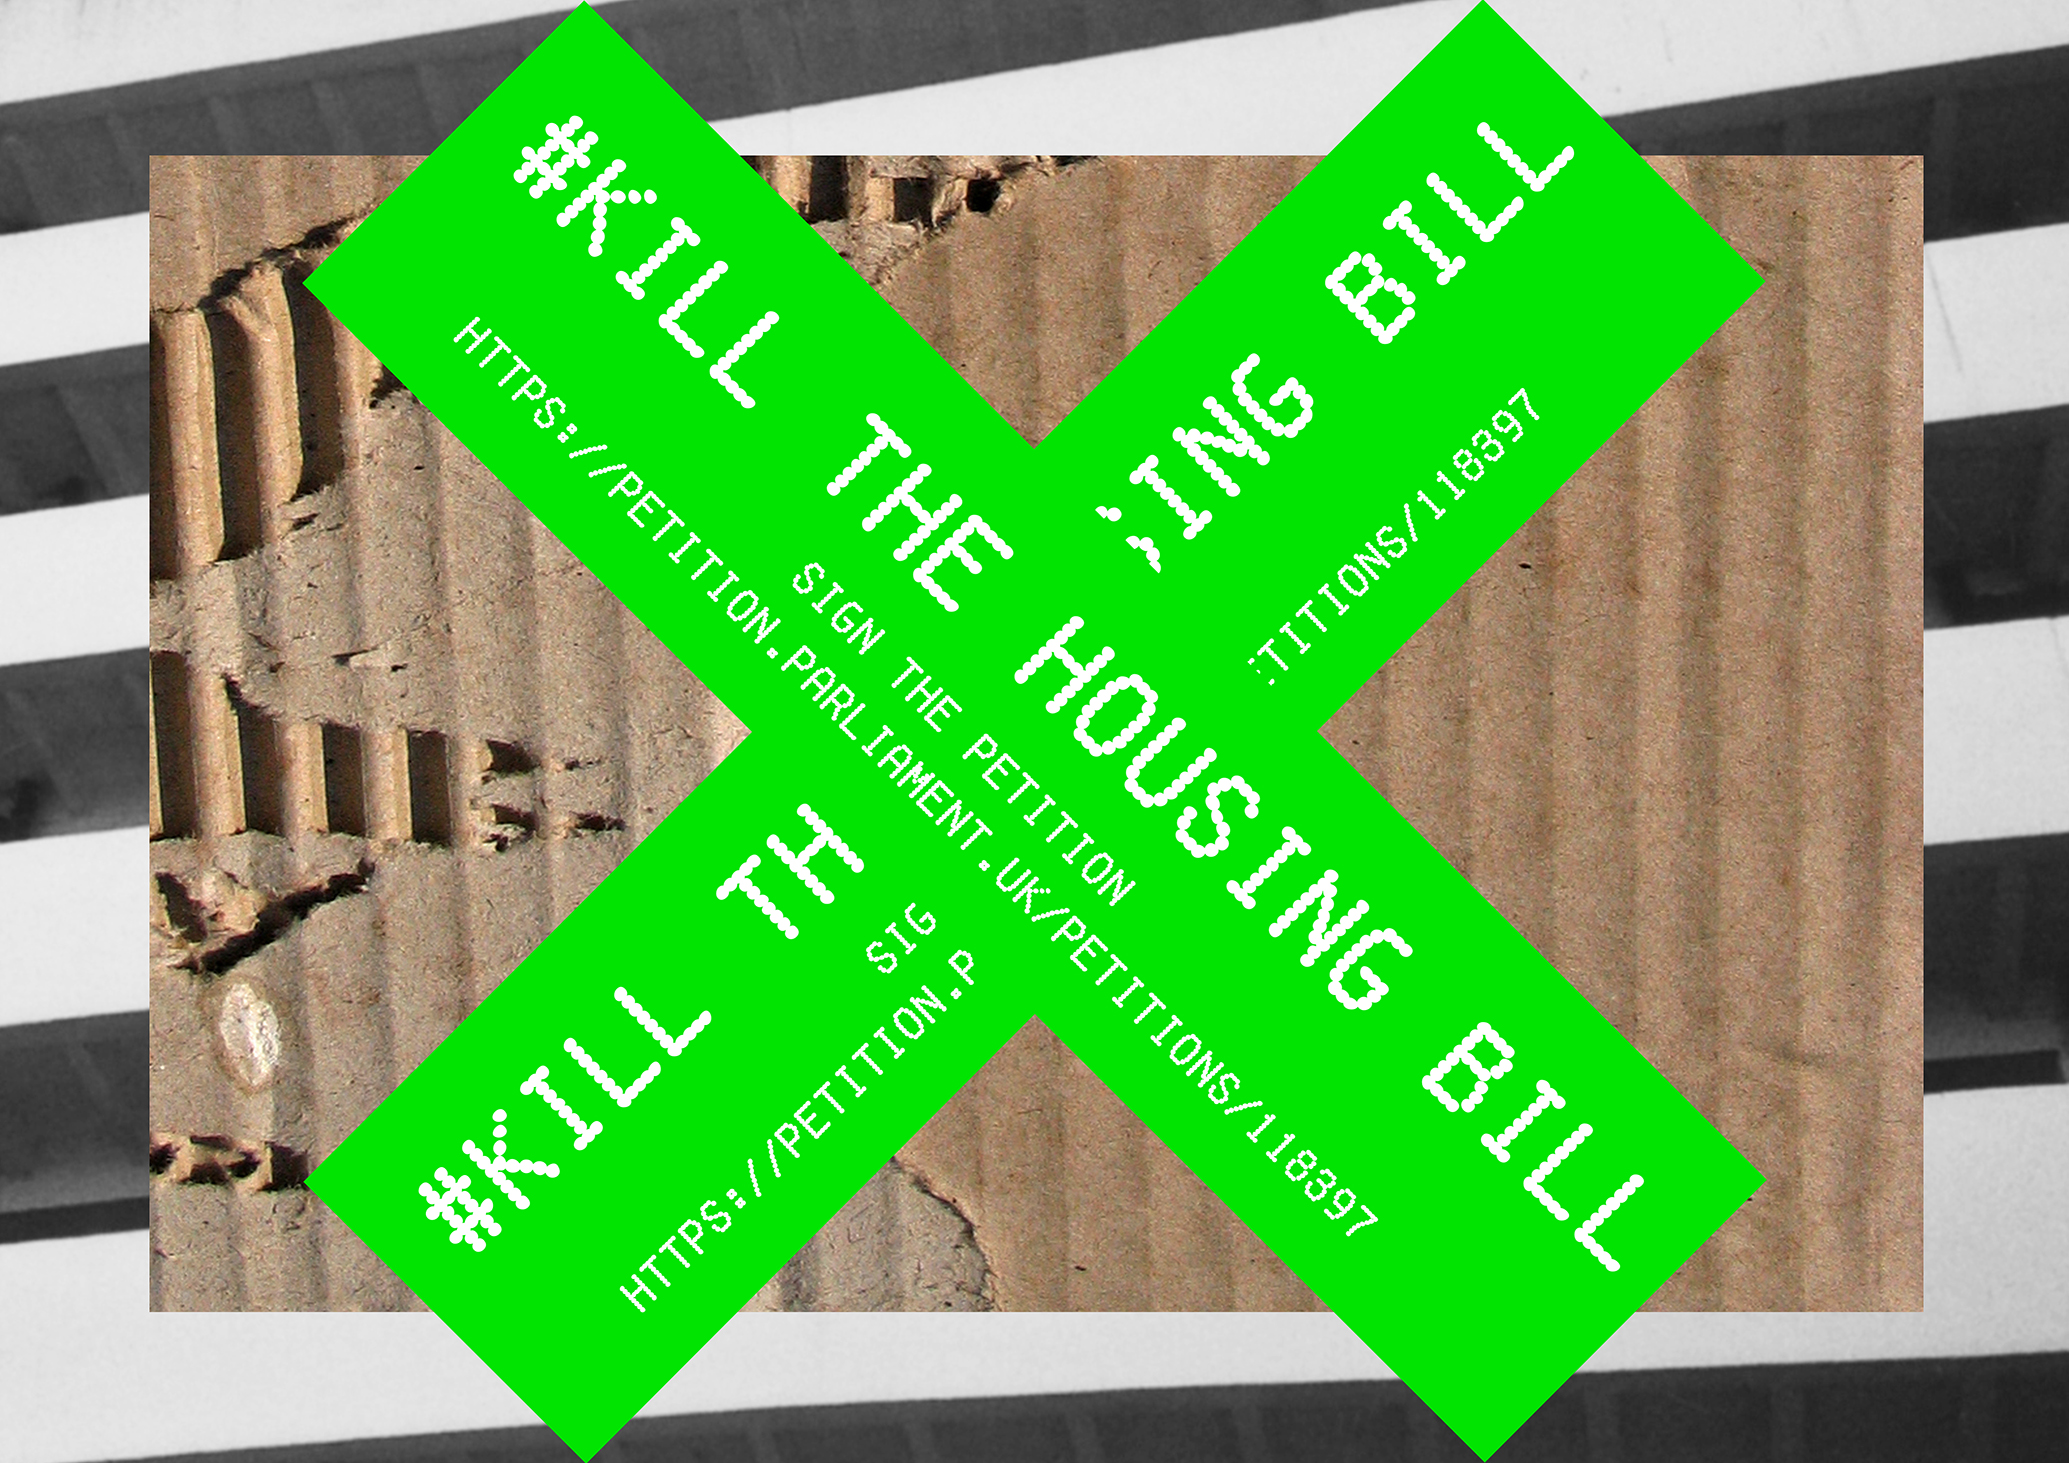 KILLTHEHOUSINGBILSNUFFCREATIVE2016-green-LR.jpg